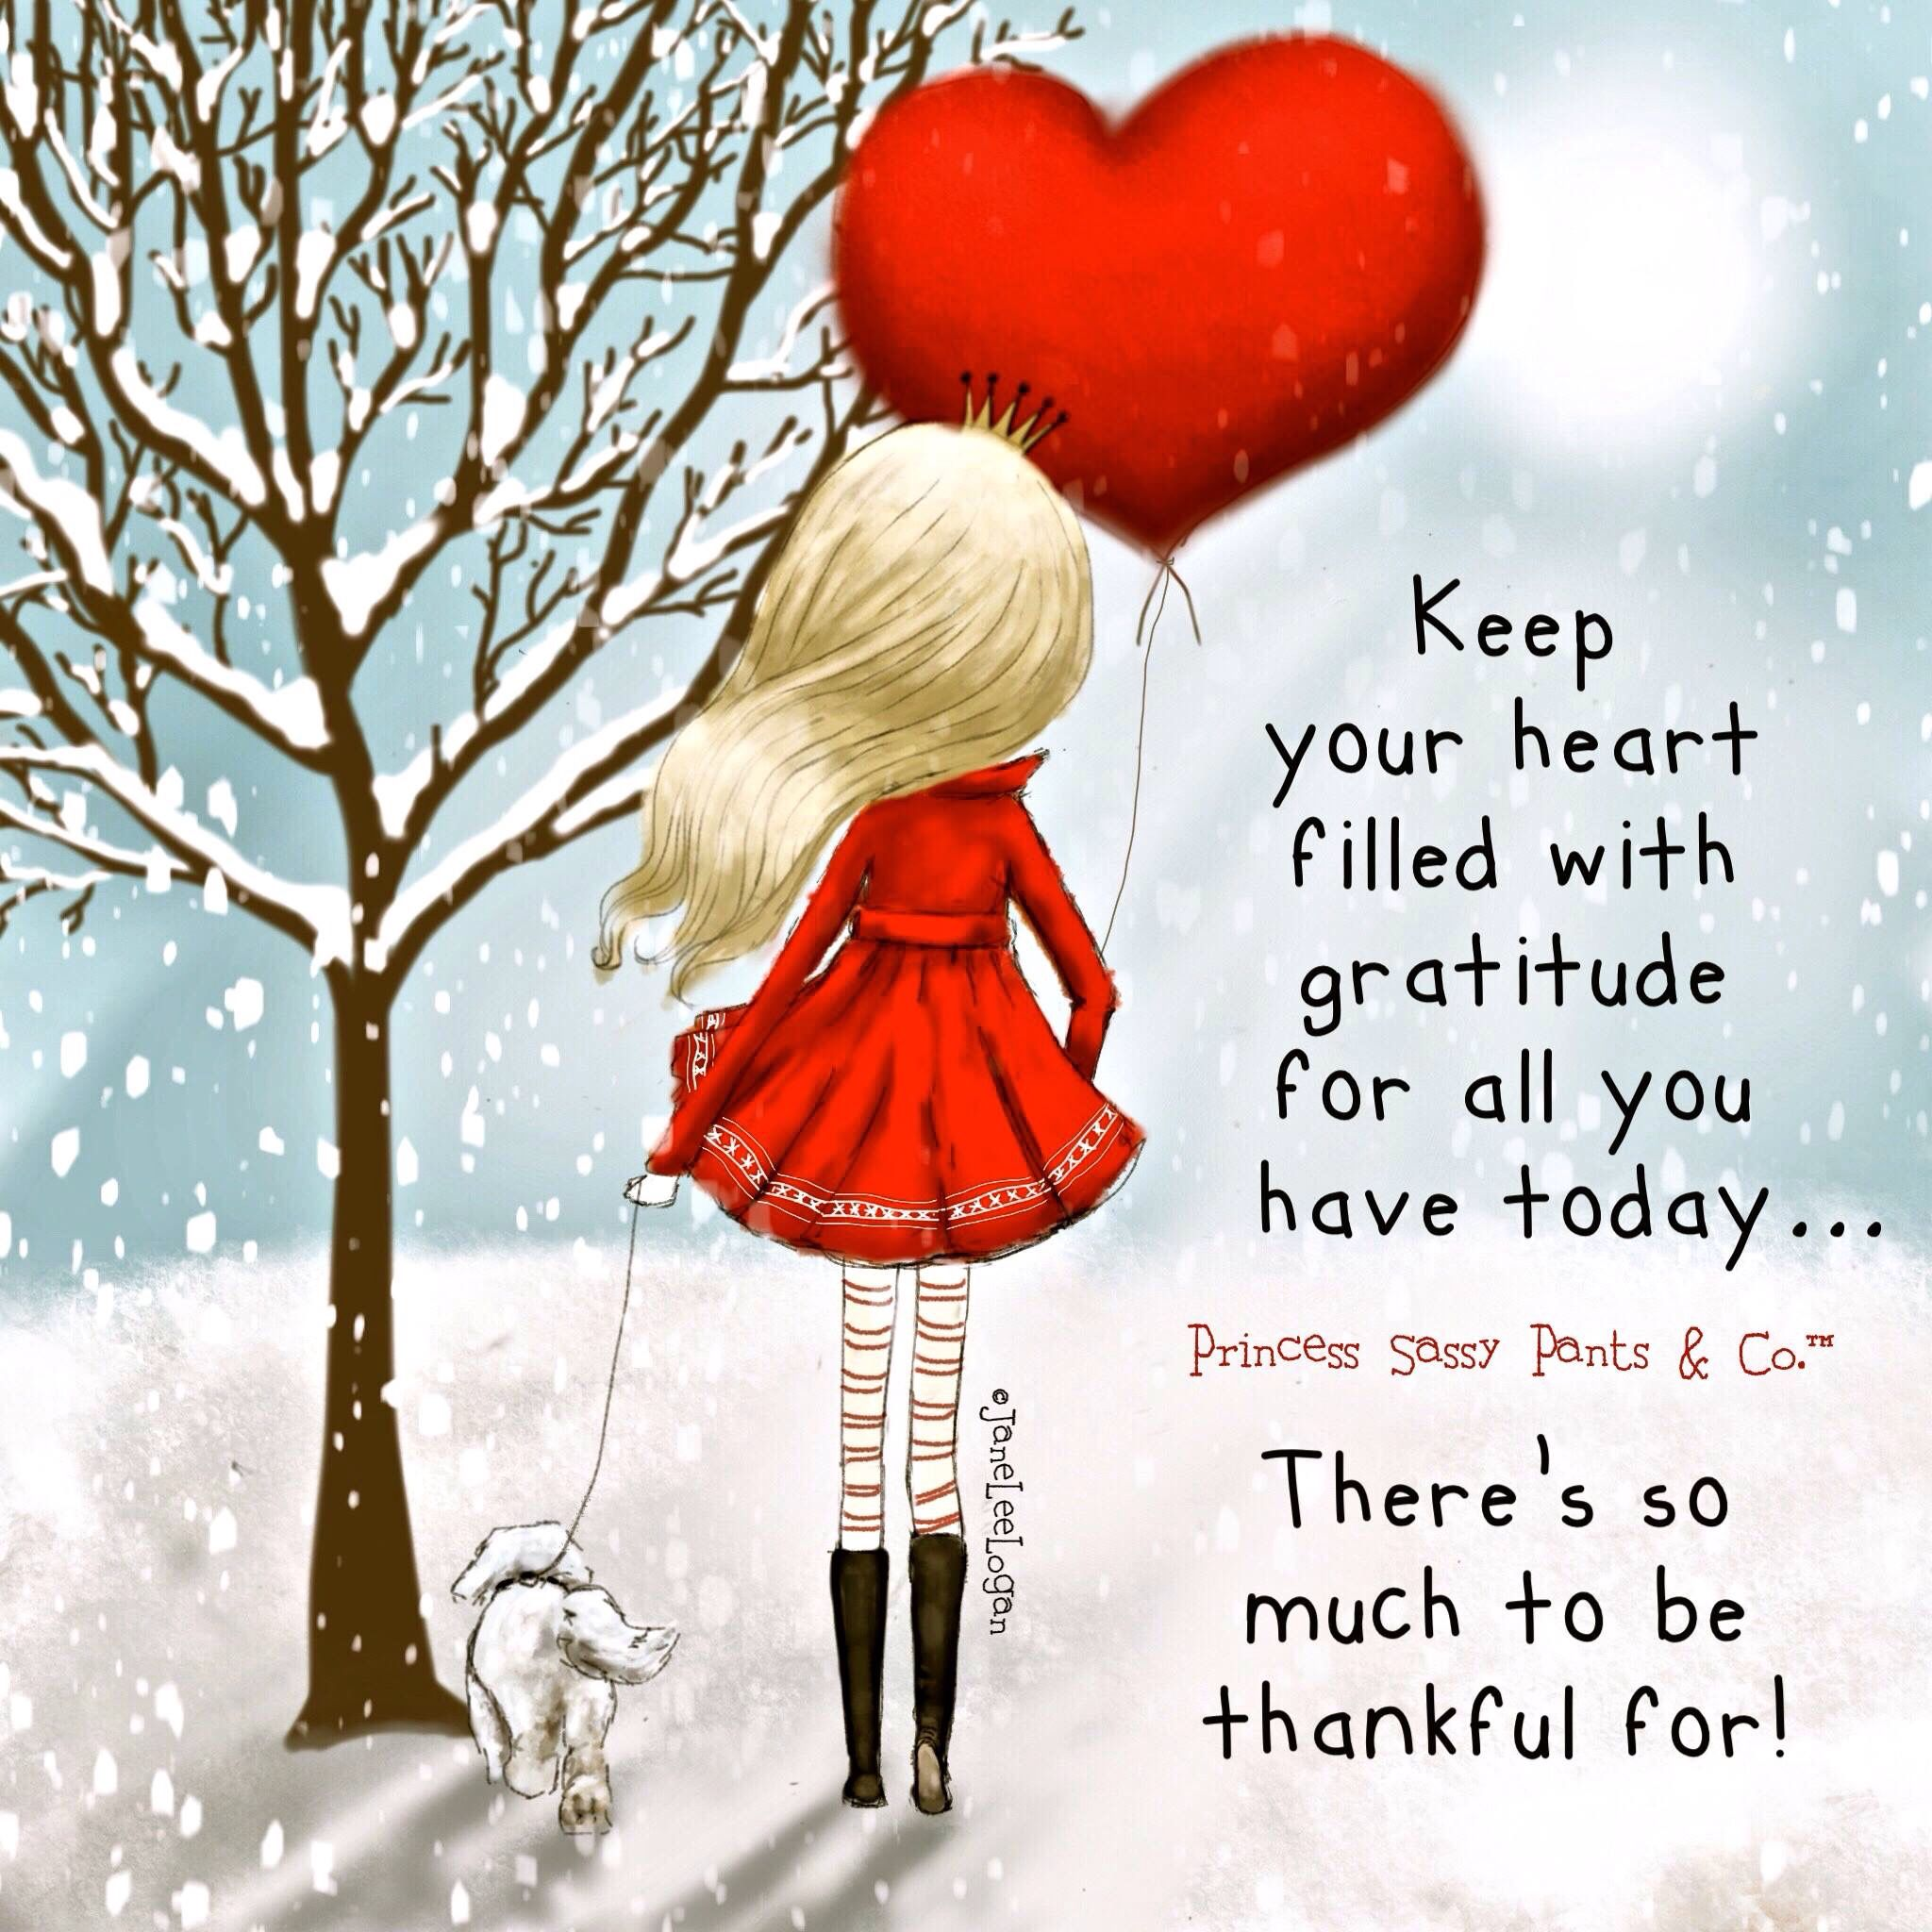 Kep Your Heart Filled W Gratitude For All You Have Today Theres